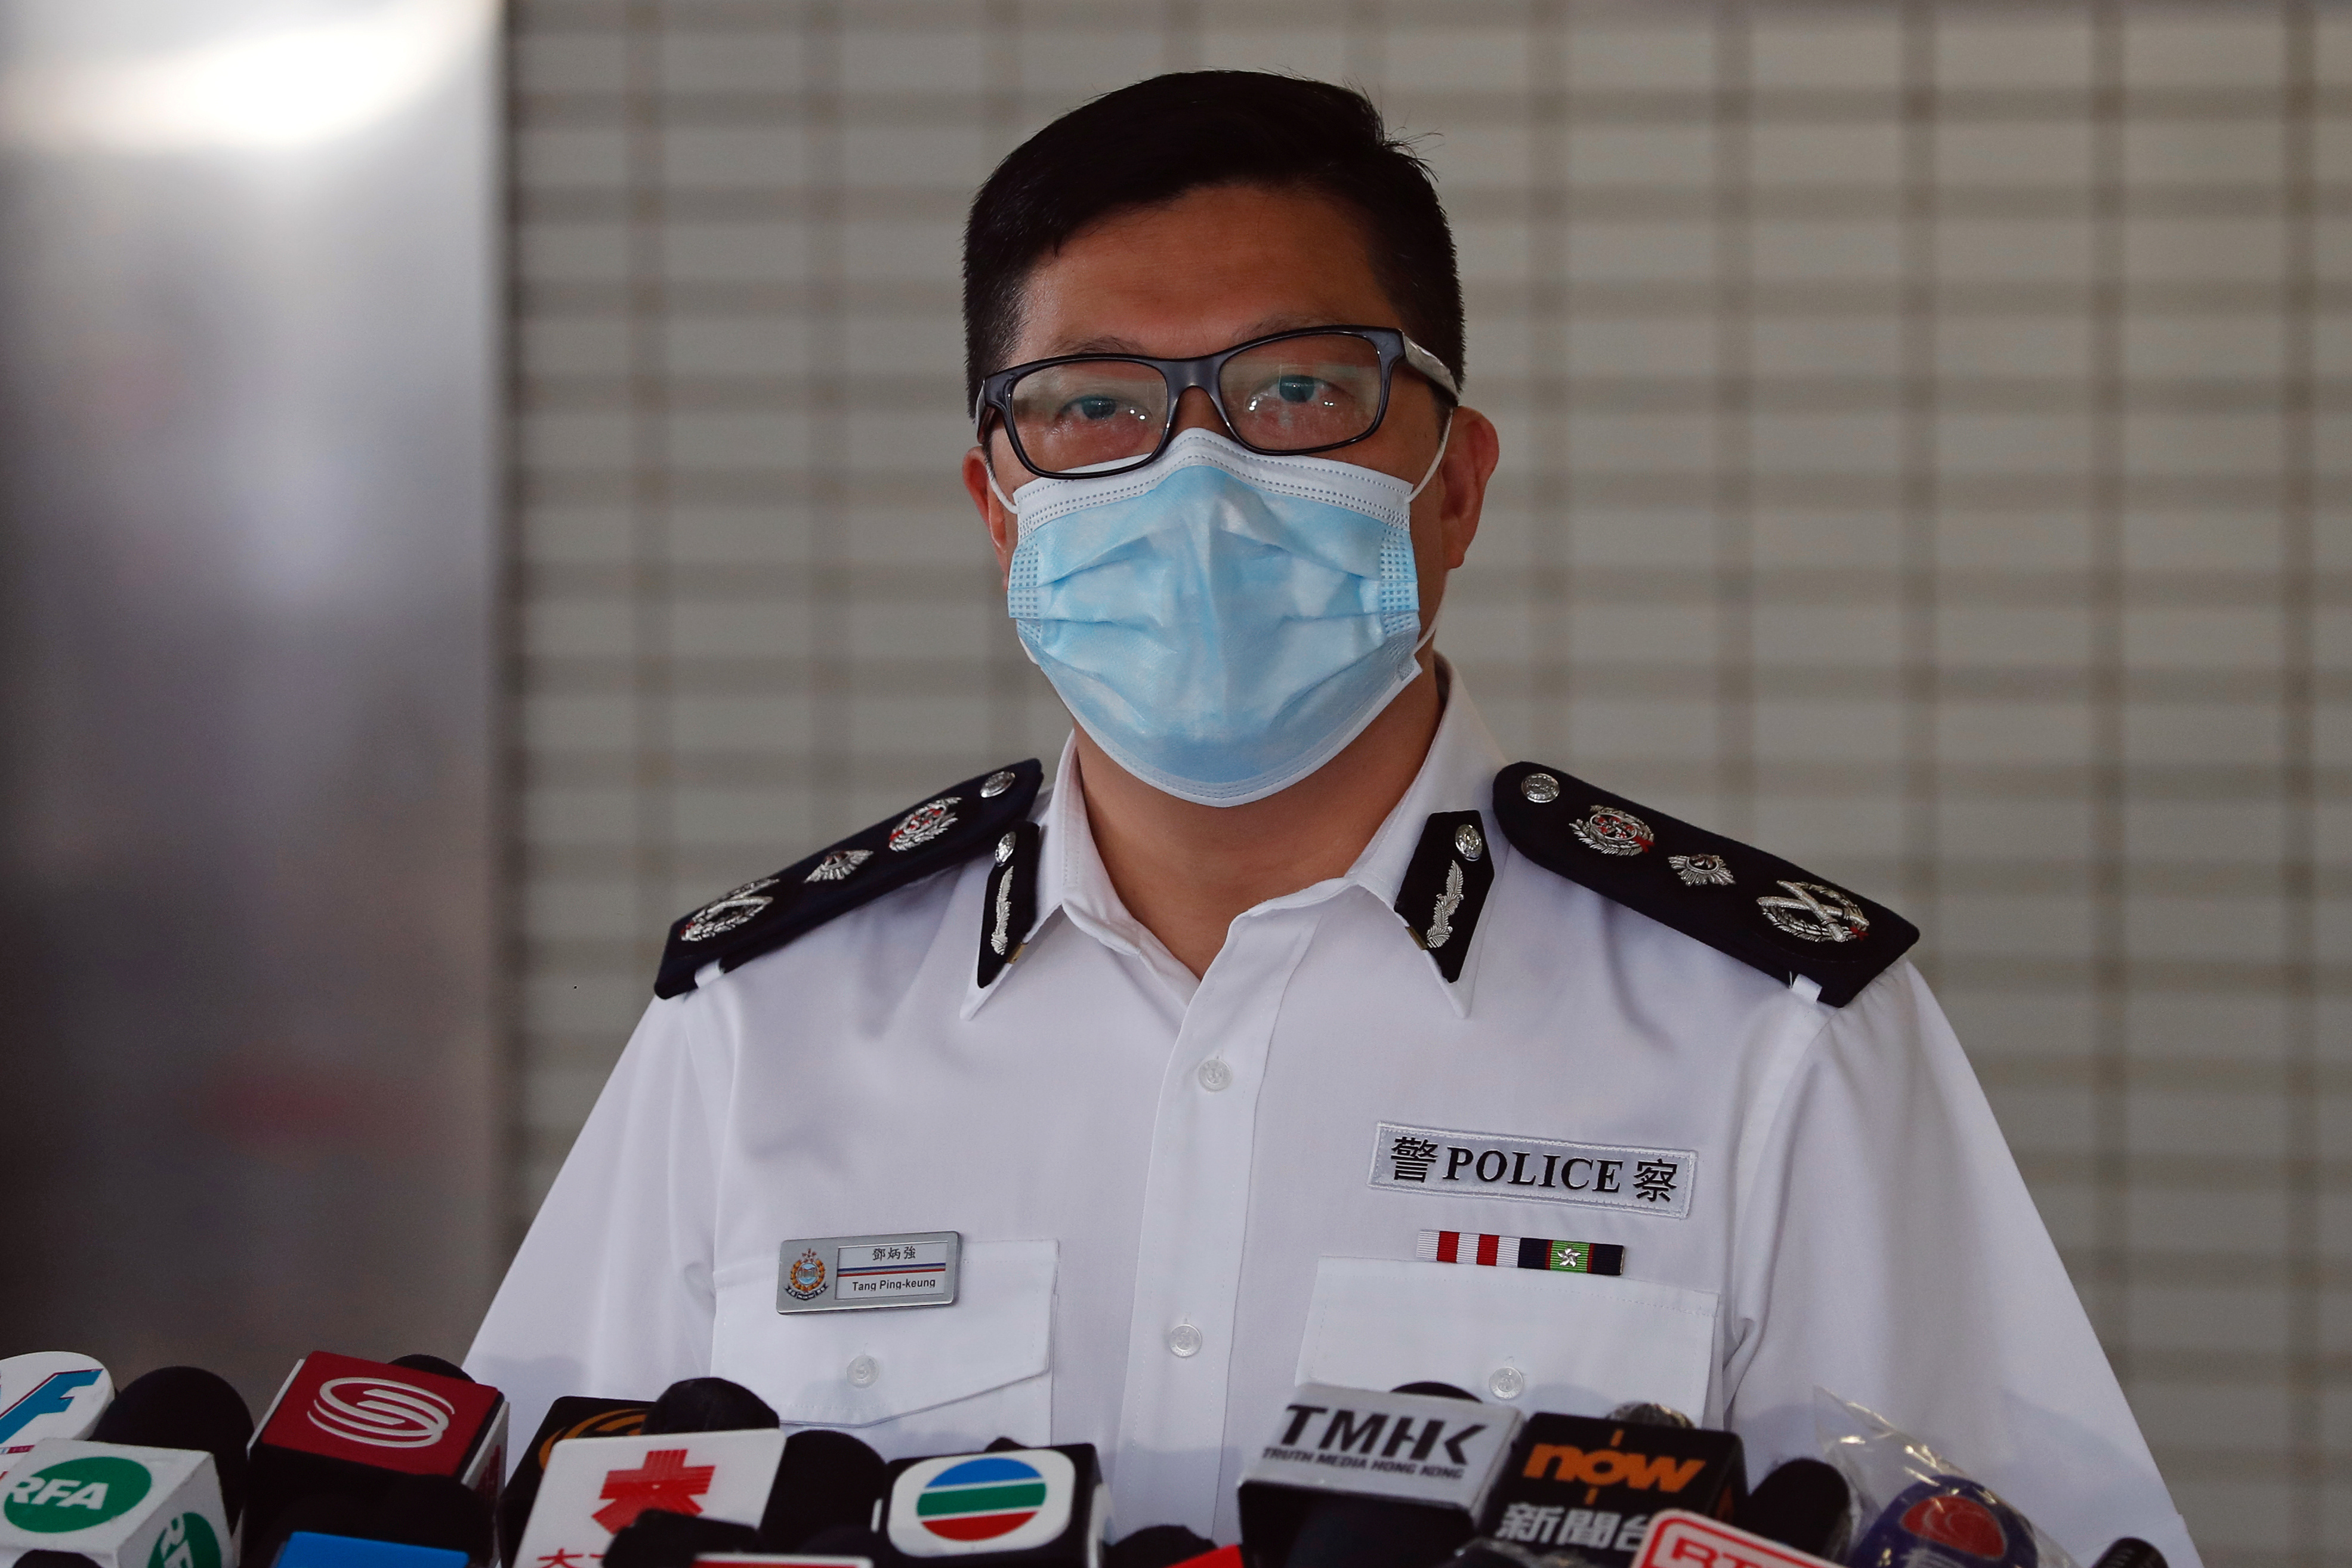 Hong Kong's Commissioner of Police Chris Ping-keung Tang attends a news conference in Hong Kong, China August 27, 2020. REUTERS/Tyrone Siu